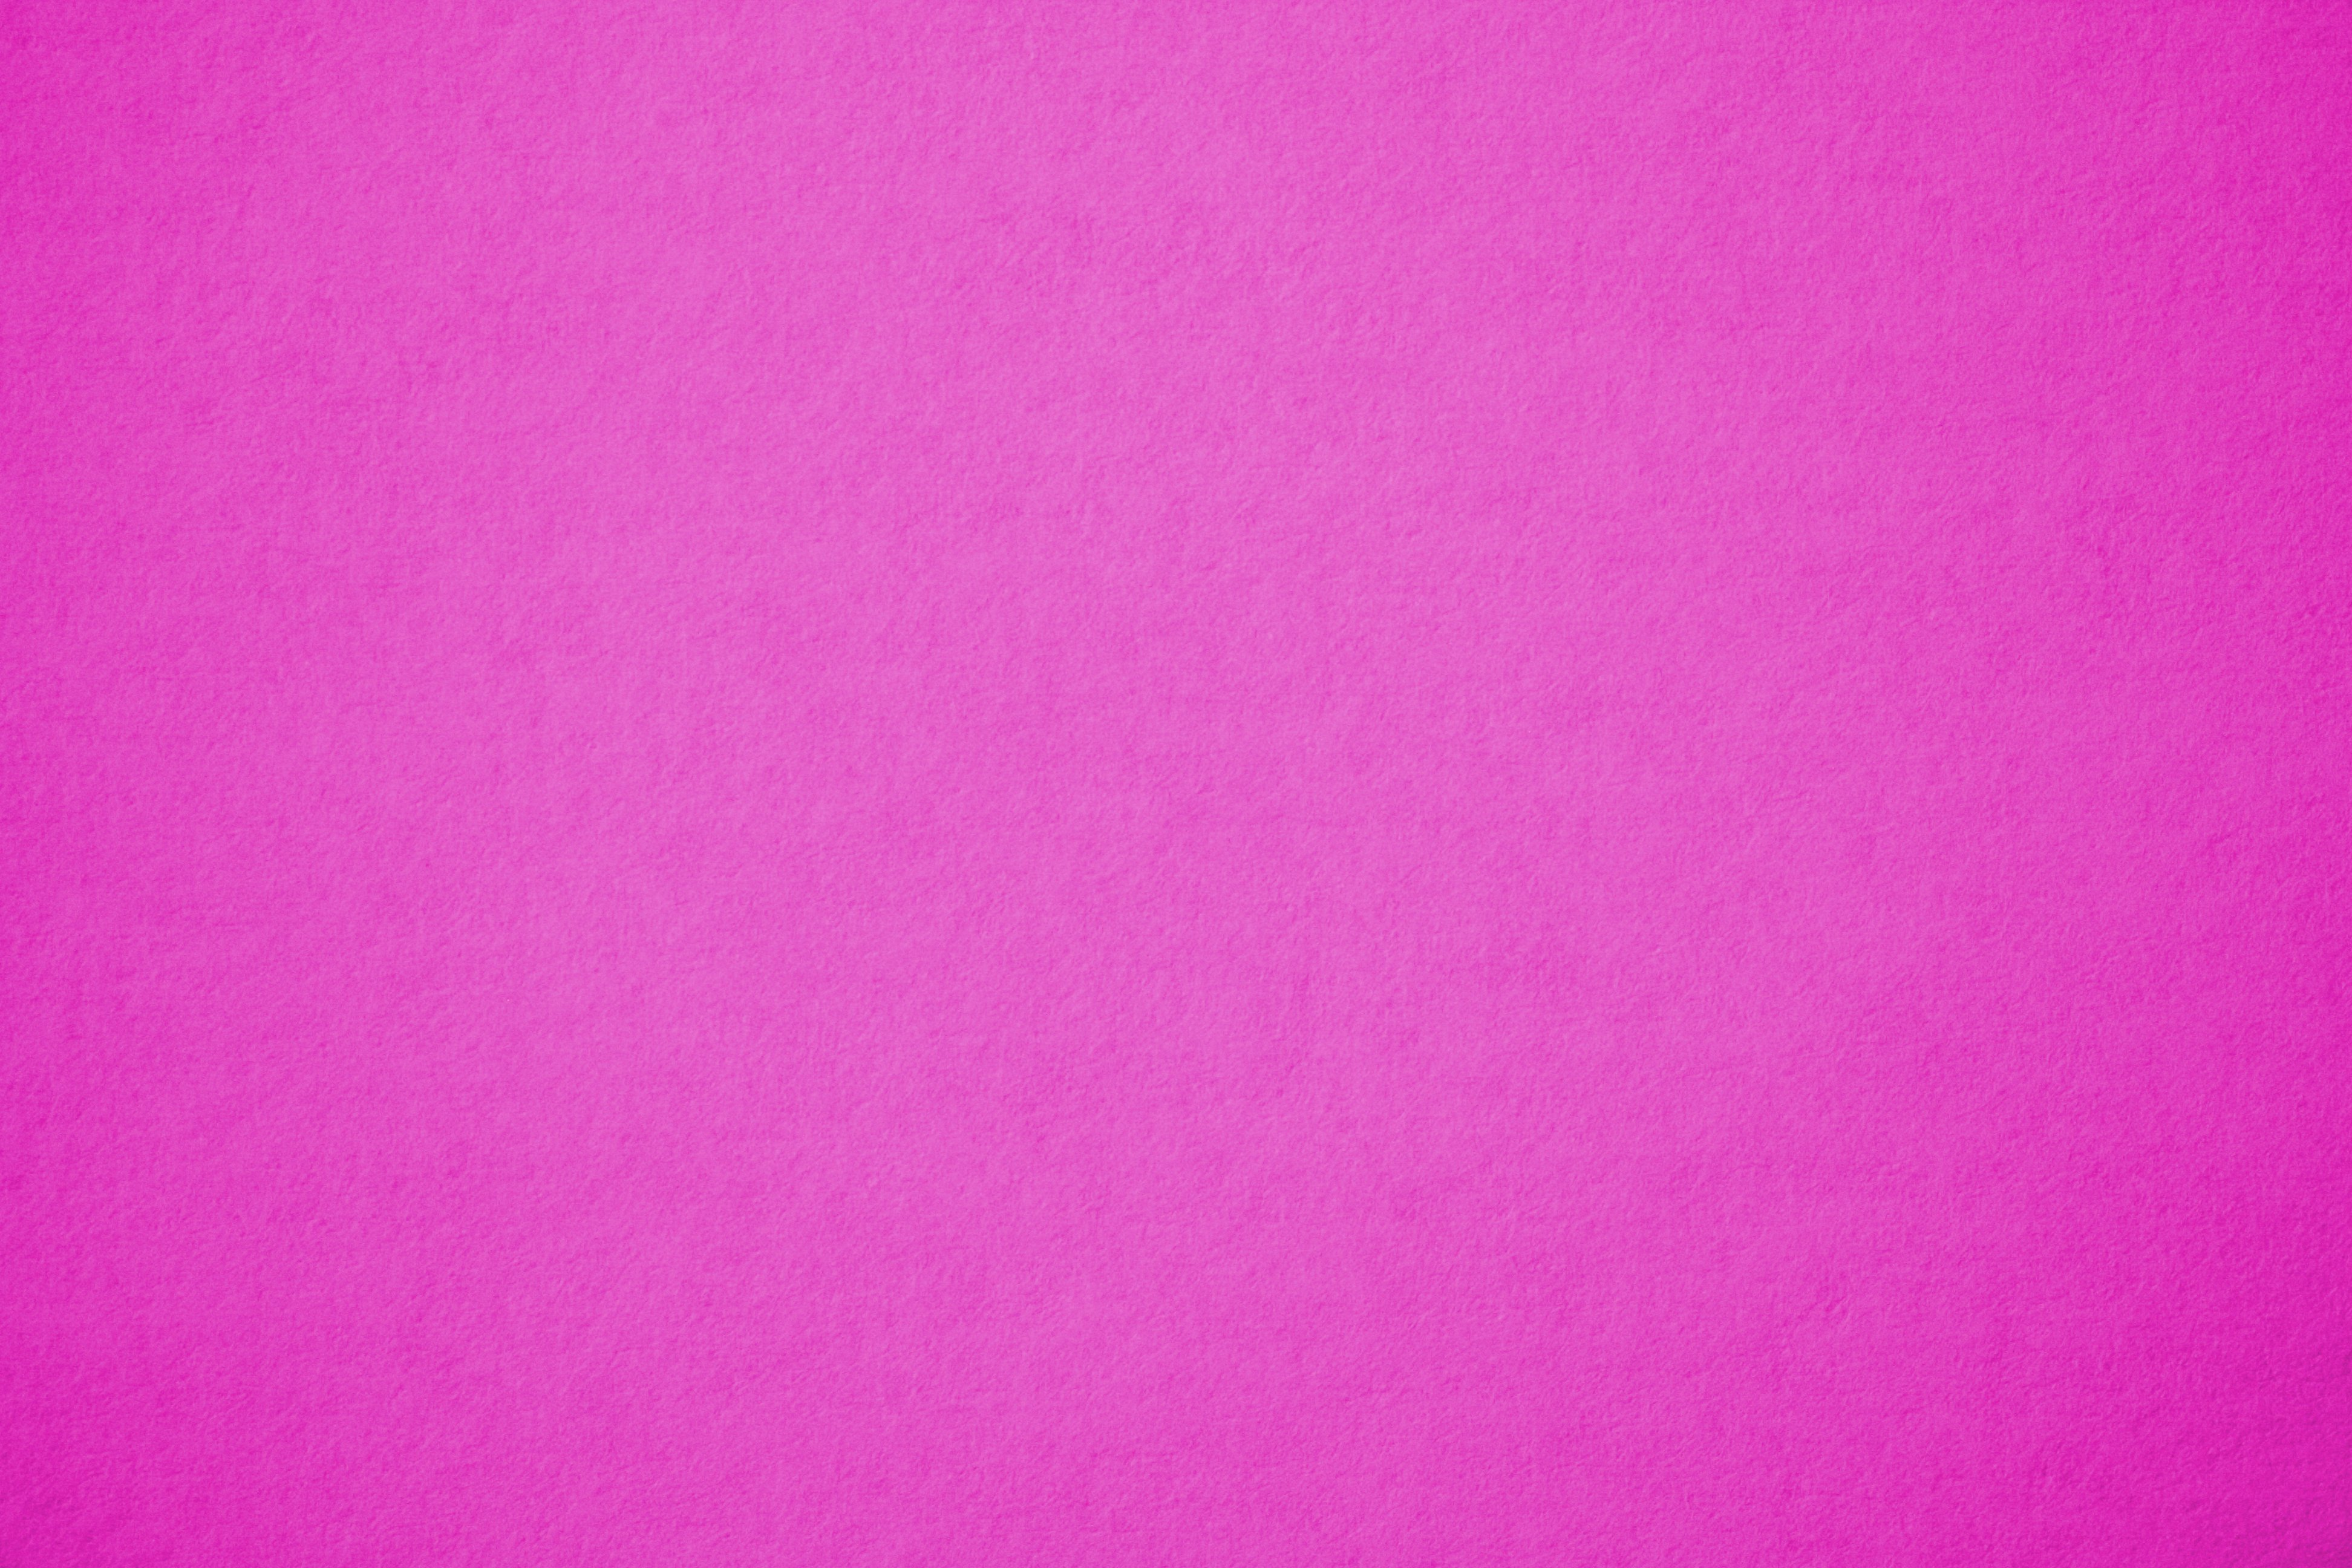 hot pink paper texture picture free photograph photos public domain. Black Bedroom Furniture Sets. Home Design Ideas